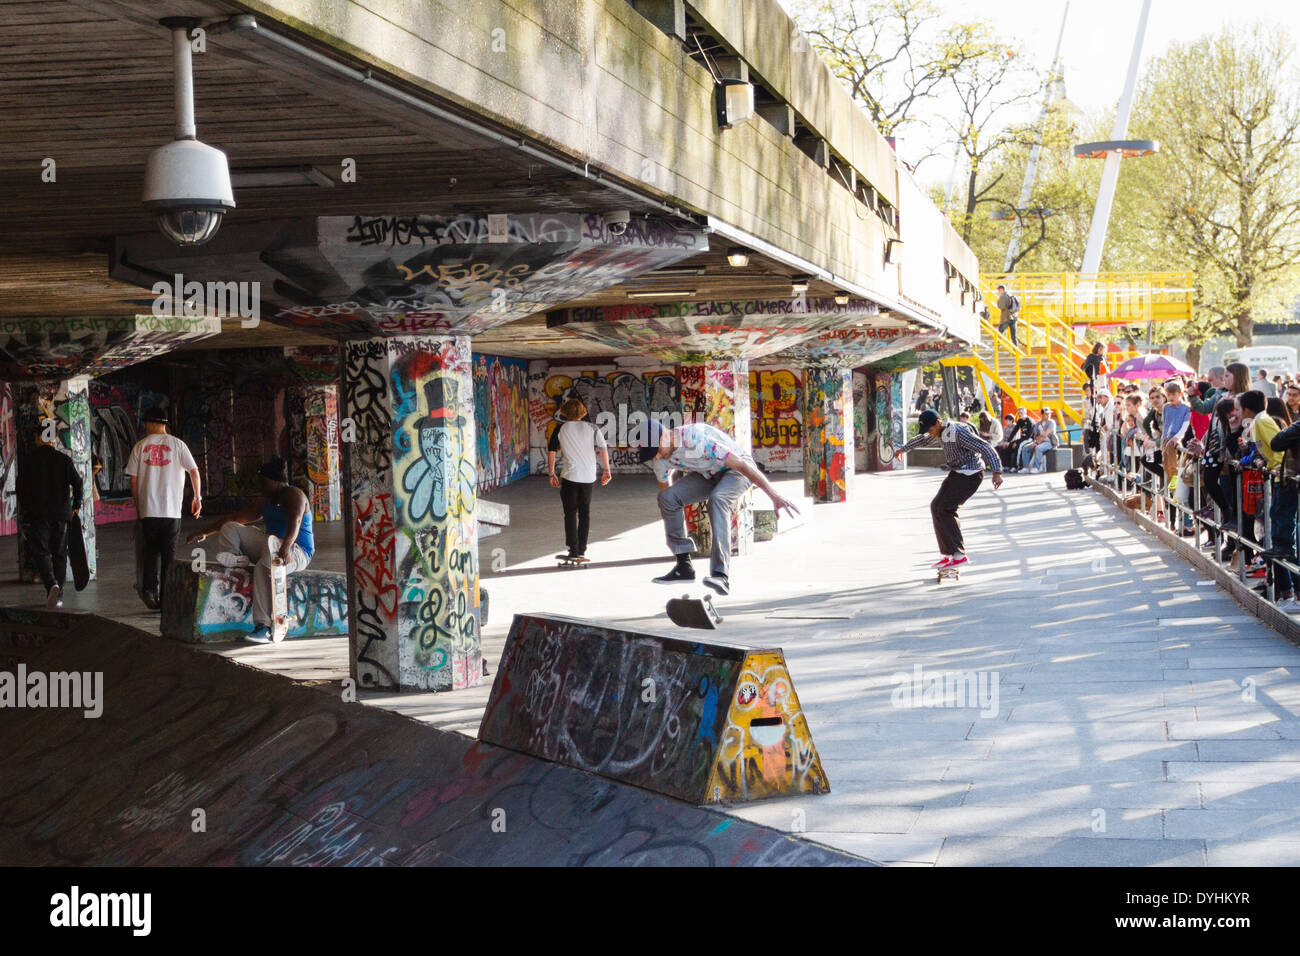 Skateboarders at the Southbank skatepark, undercroft of the Southbank Centre, London, England, UK - Stock Image